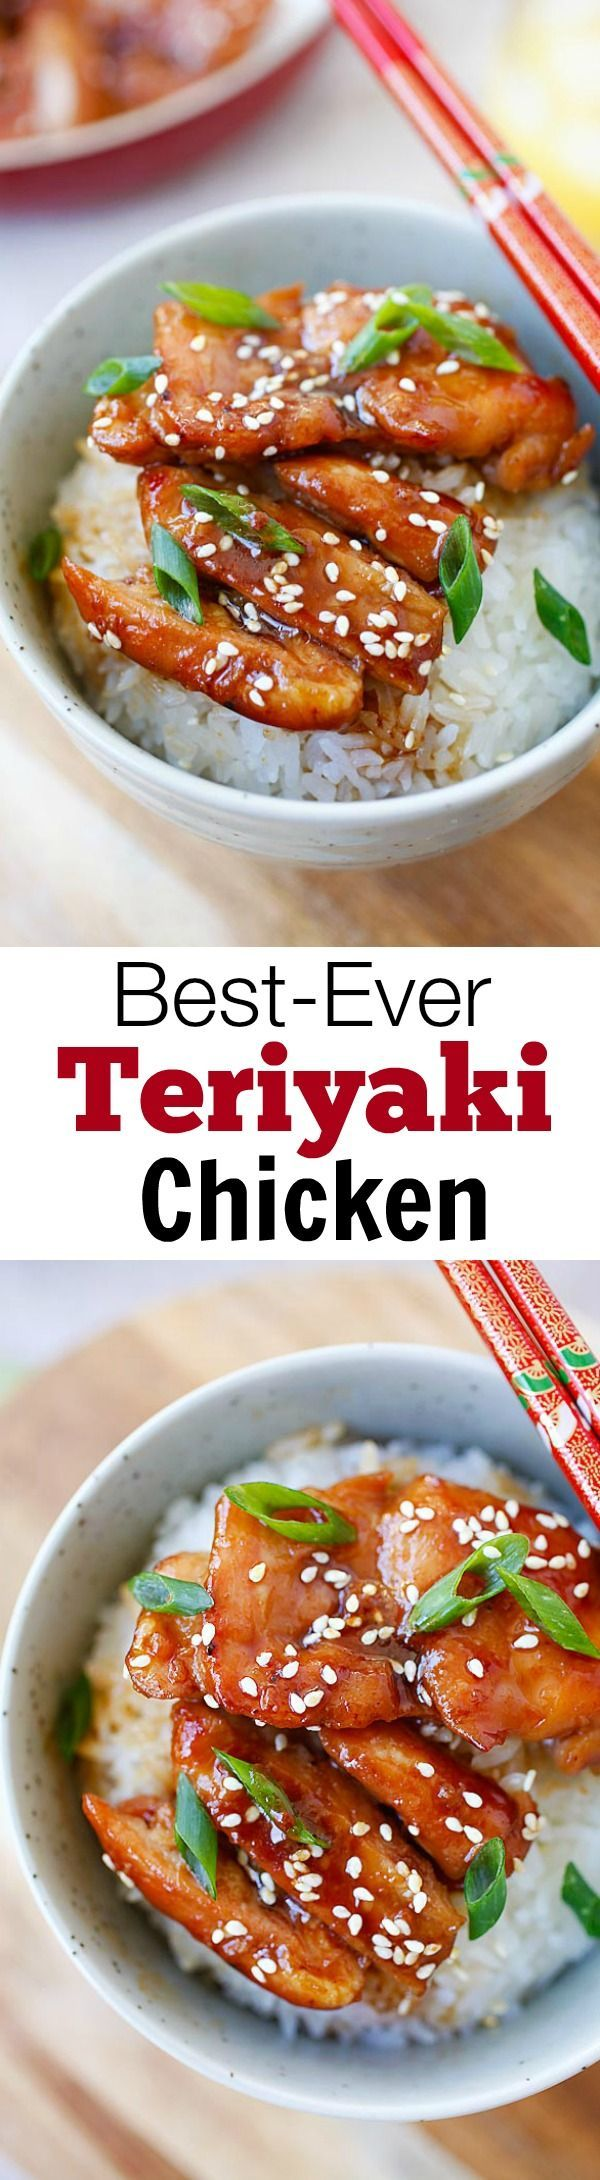 Teriyaki chicken – the most popular Japanese chicken dish. Learn how to make teriyaki chicken with this easy 30-min recipe with only four ingredients